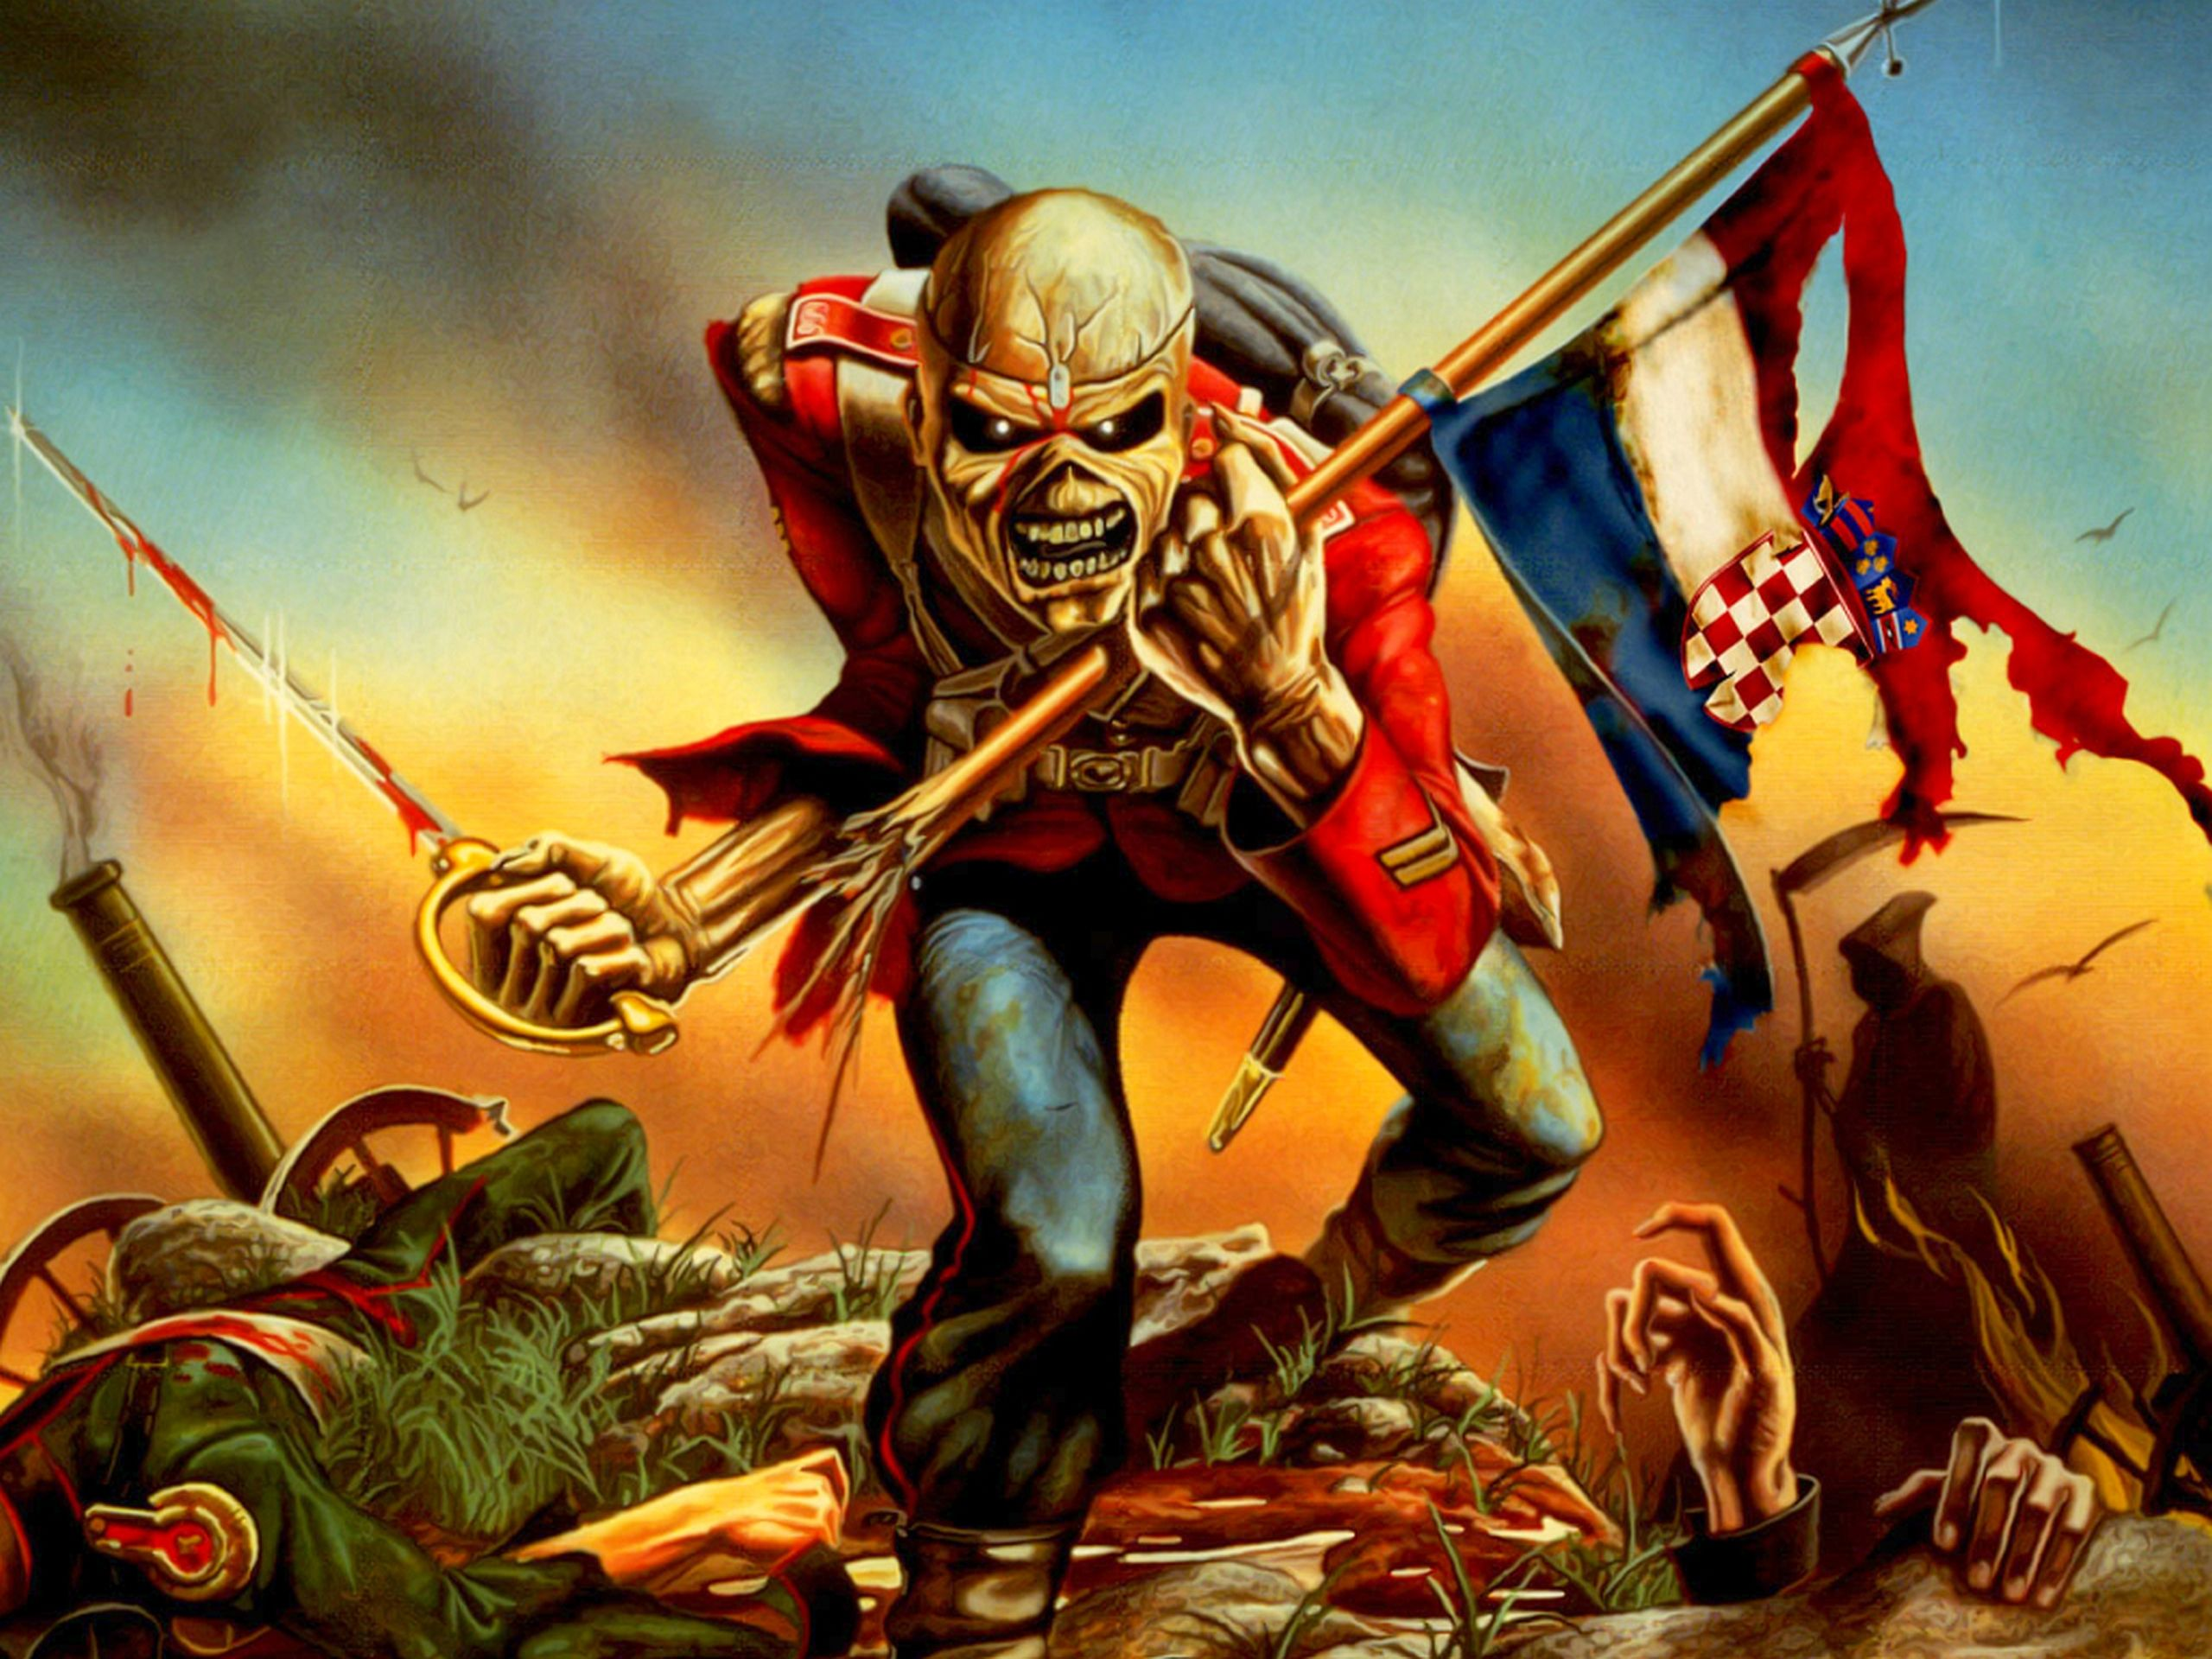 Iron Maiden The Trooper Wallpaper Full Hd Is Cool Wallpapers Iron Maiden Heavy Metal New Wave